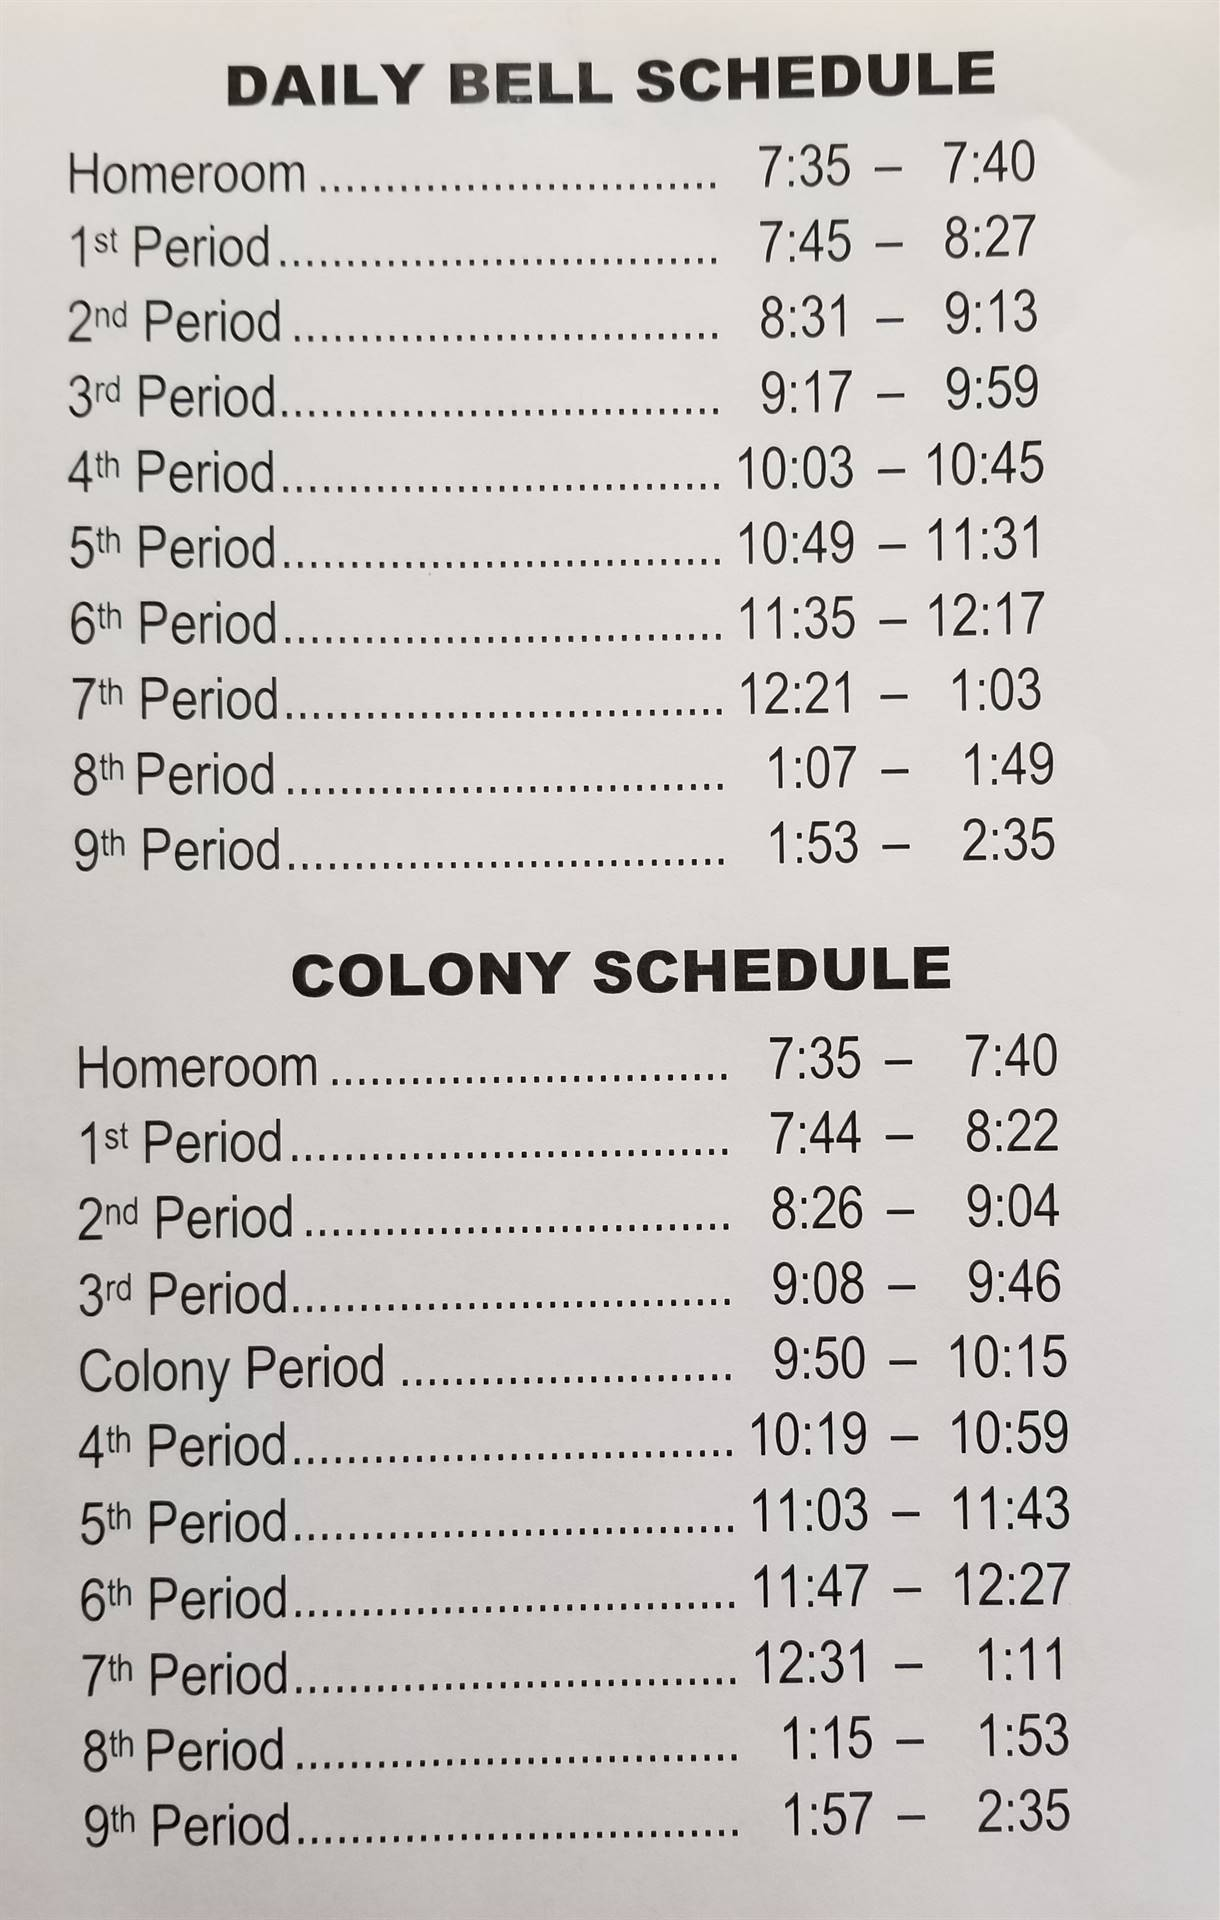 NEW BELL SCHEDULE FOR 2019-2020